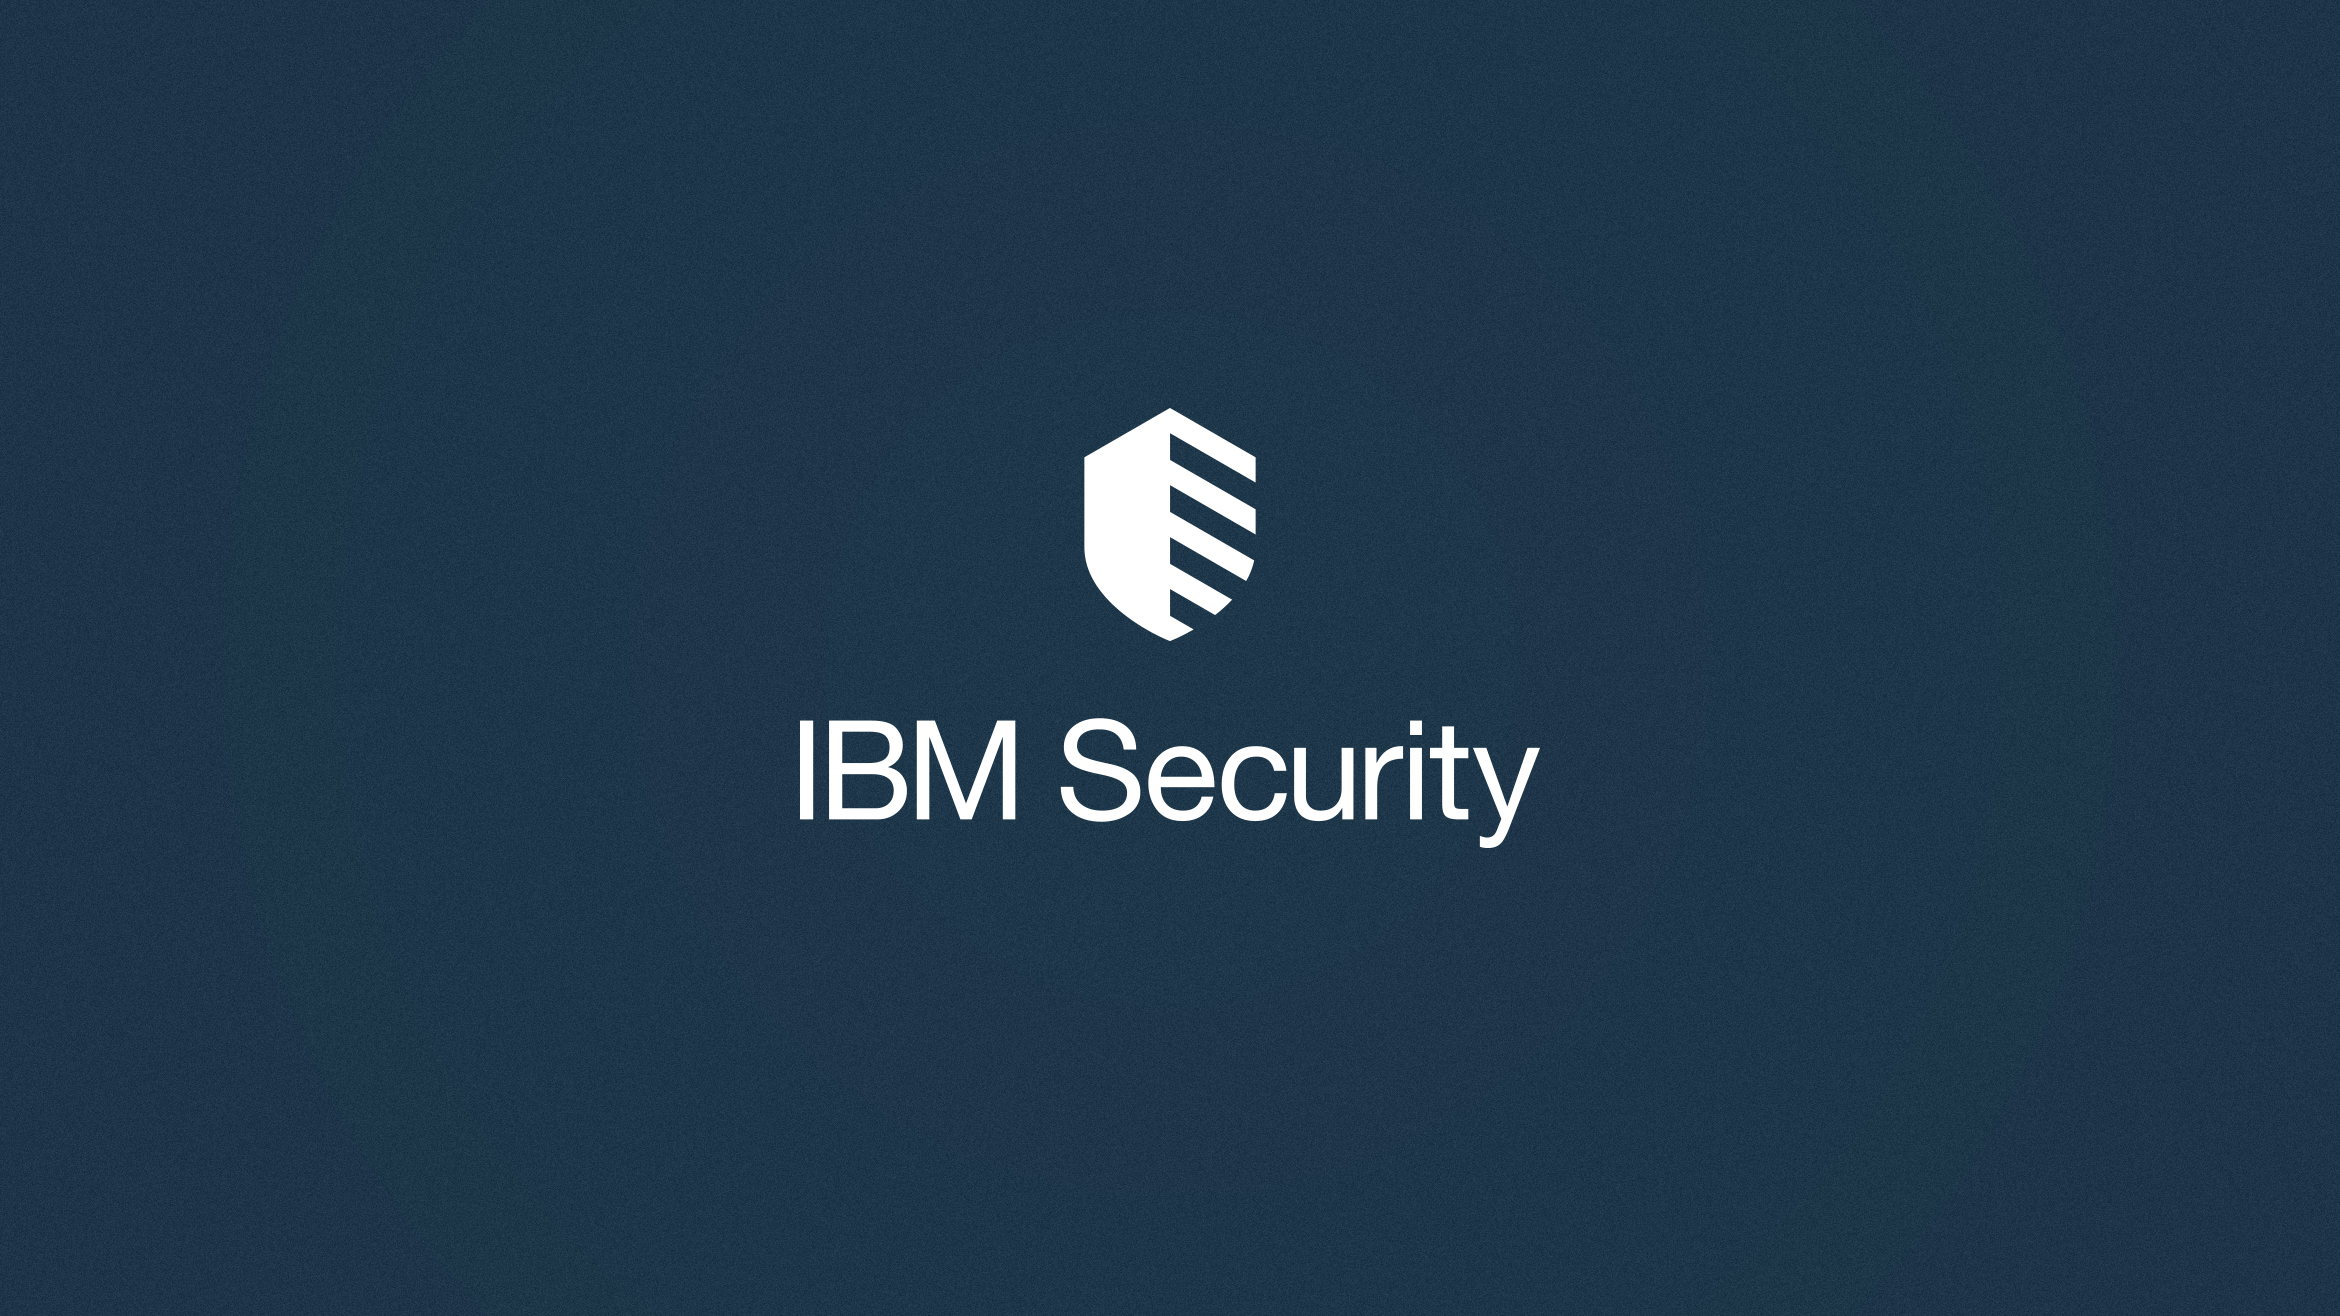 ibm_security_3_2340x1316